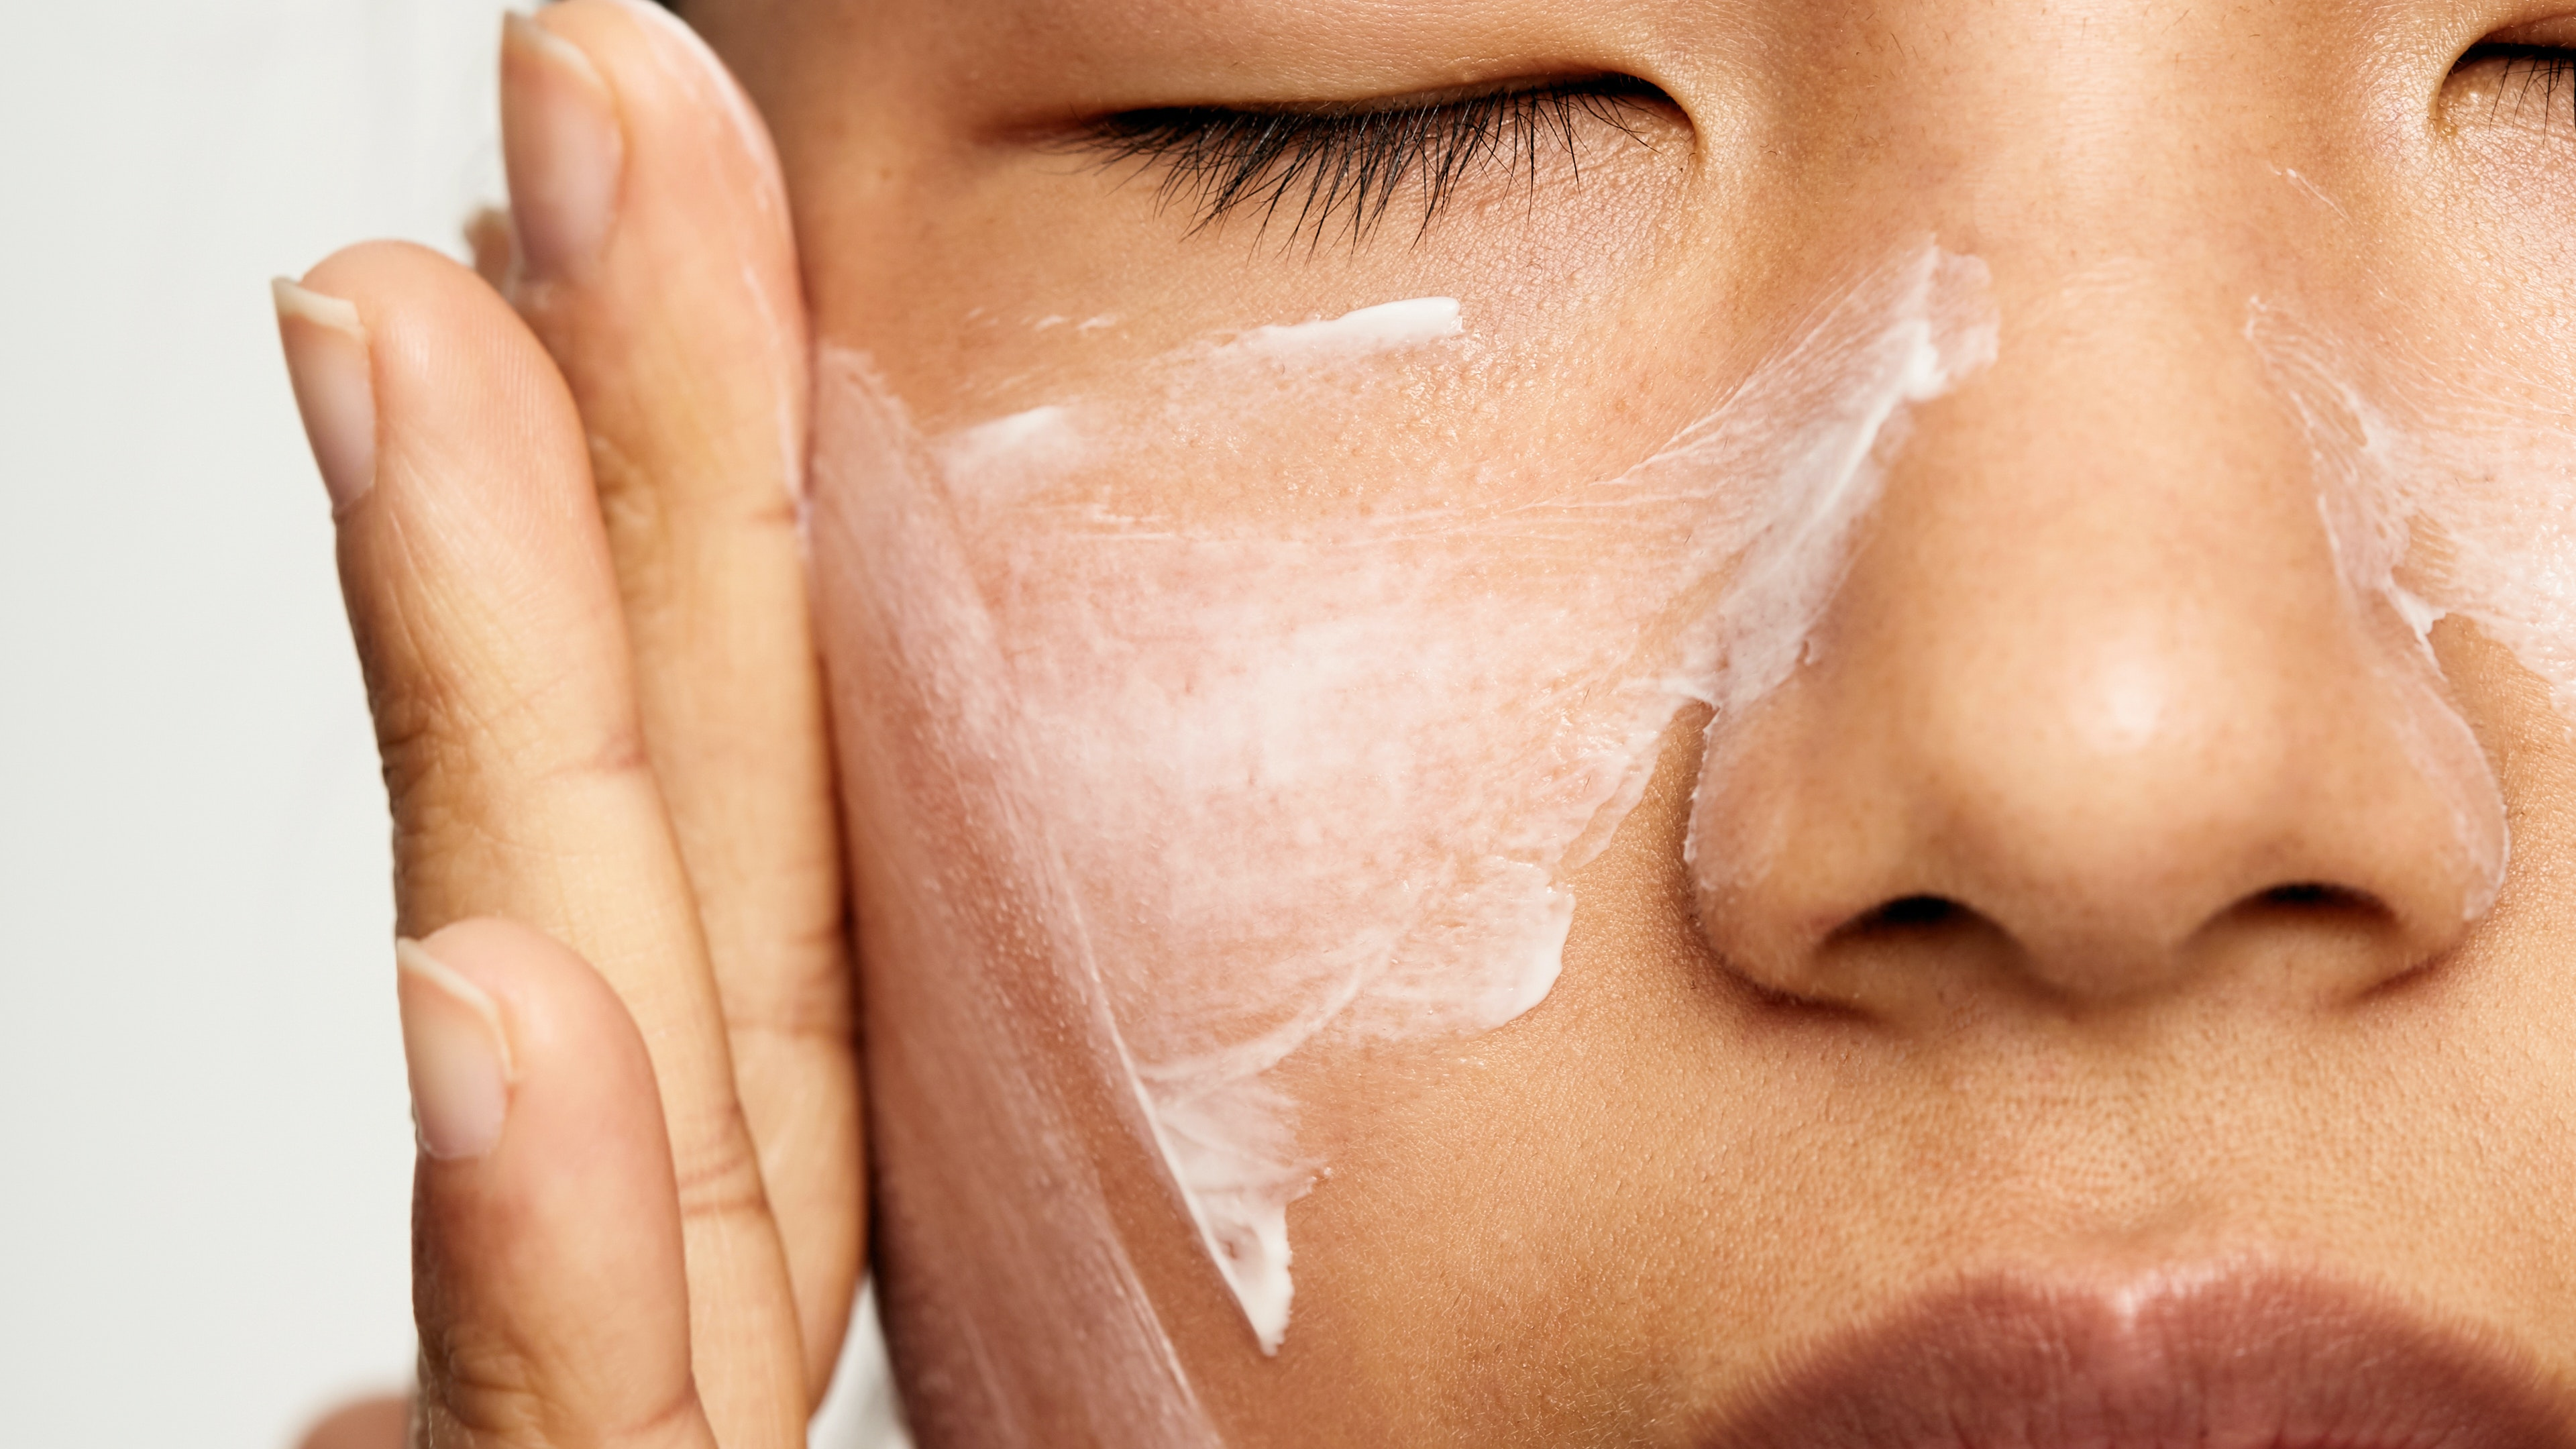 How to Use Retinol If You Have Sensitive Skin, According to Dermatologists